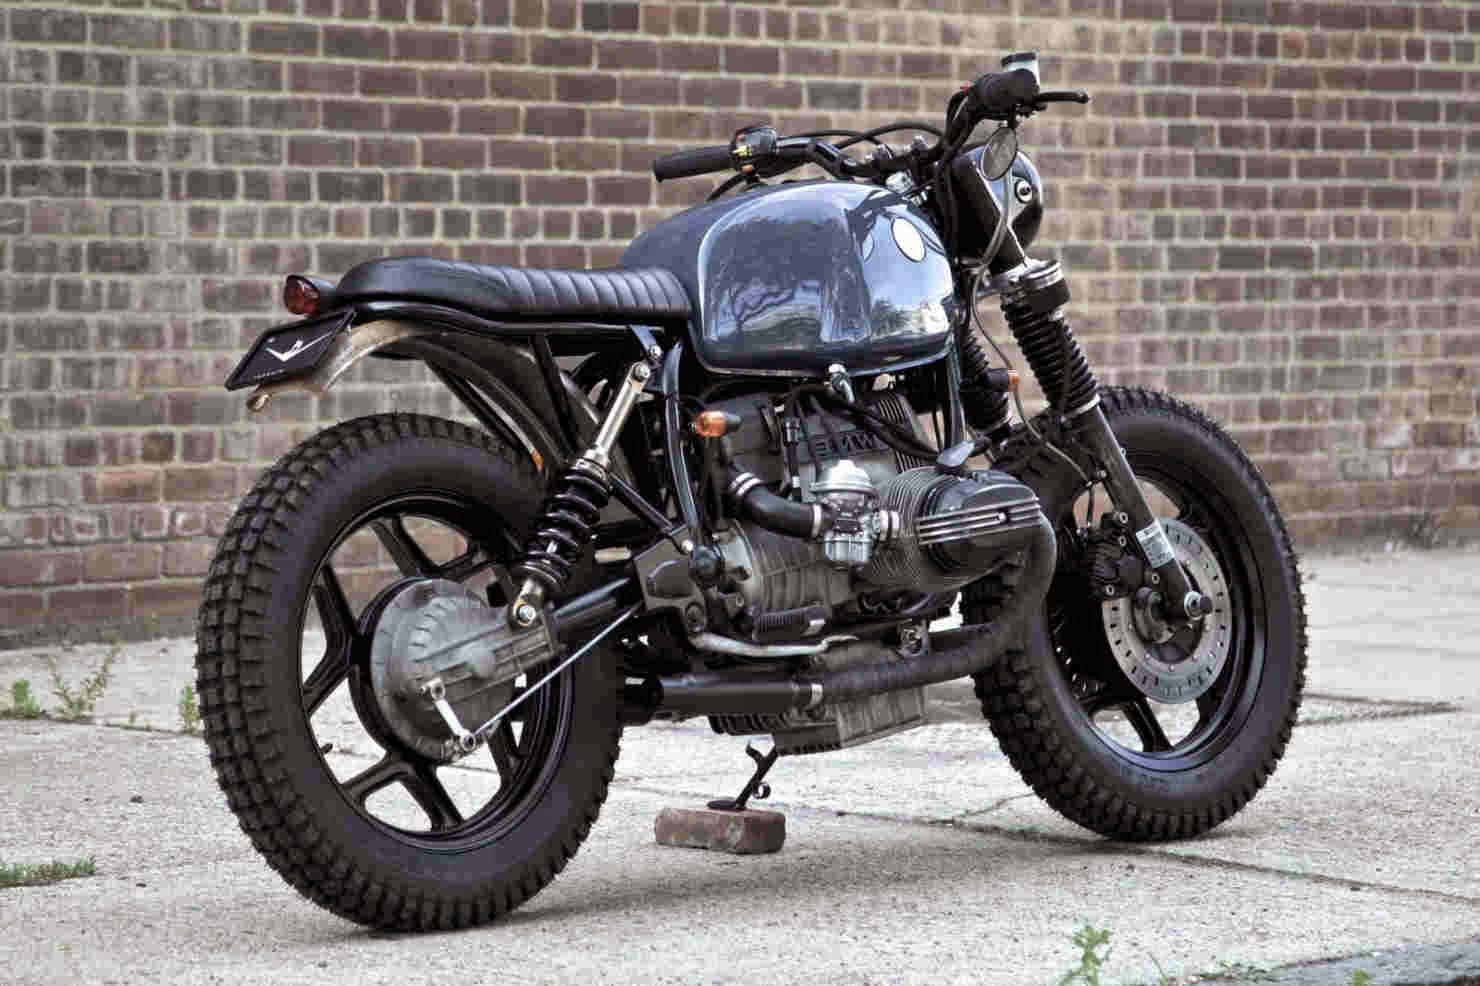 Bobber Style Motorcycles Gallery